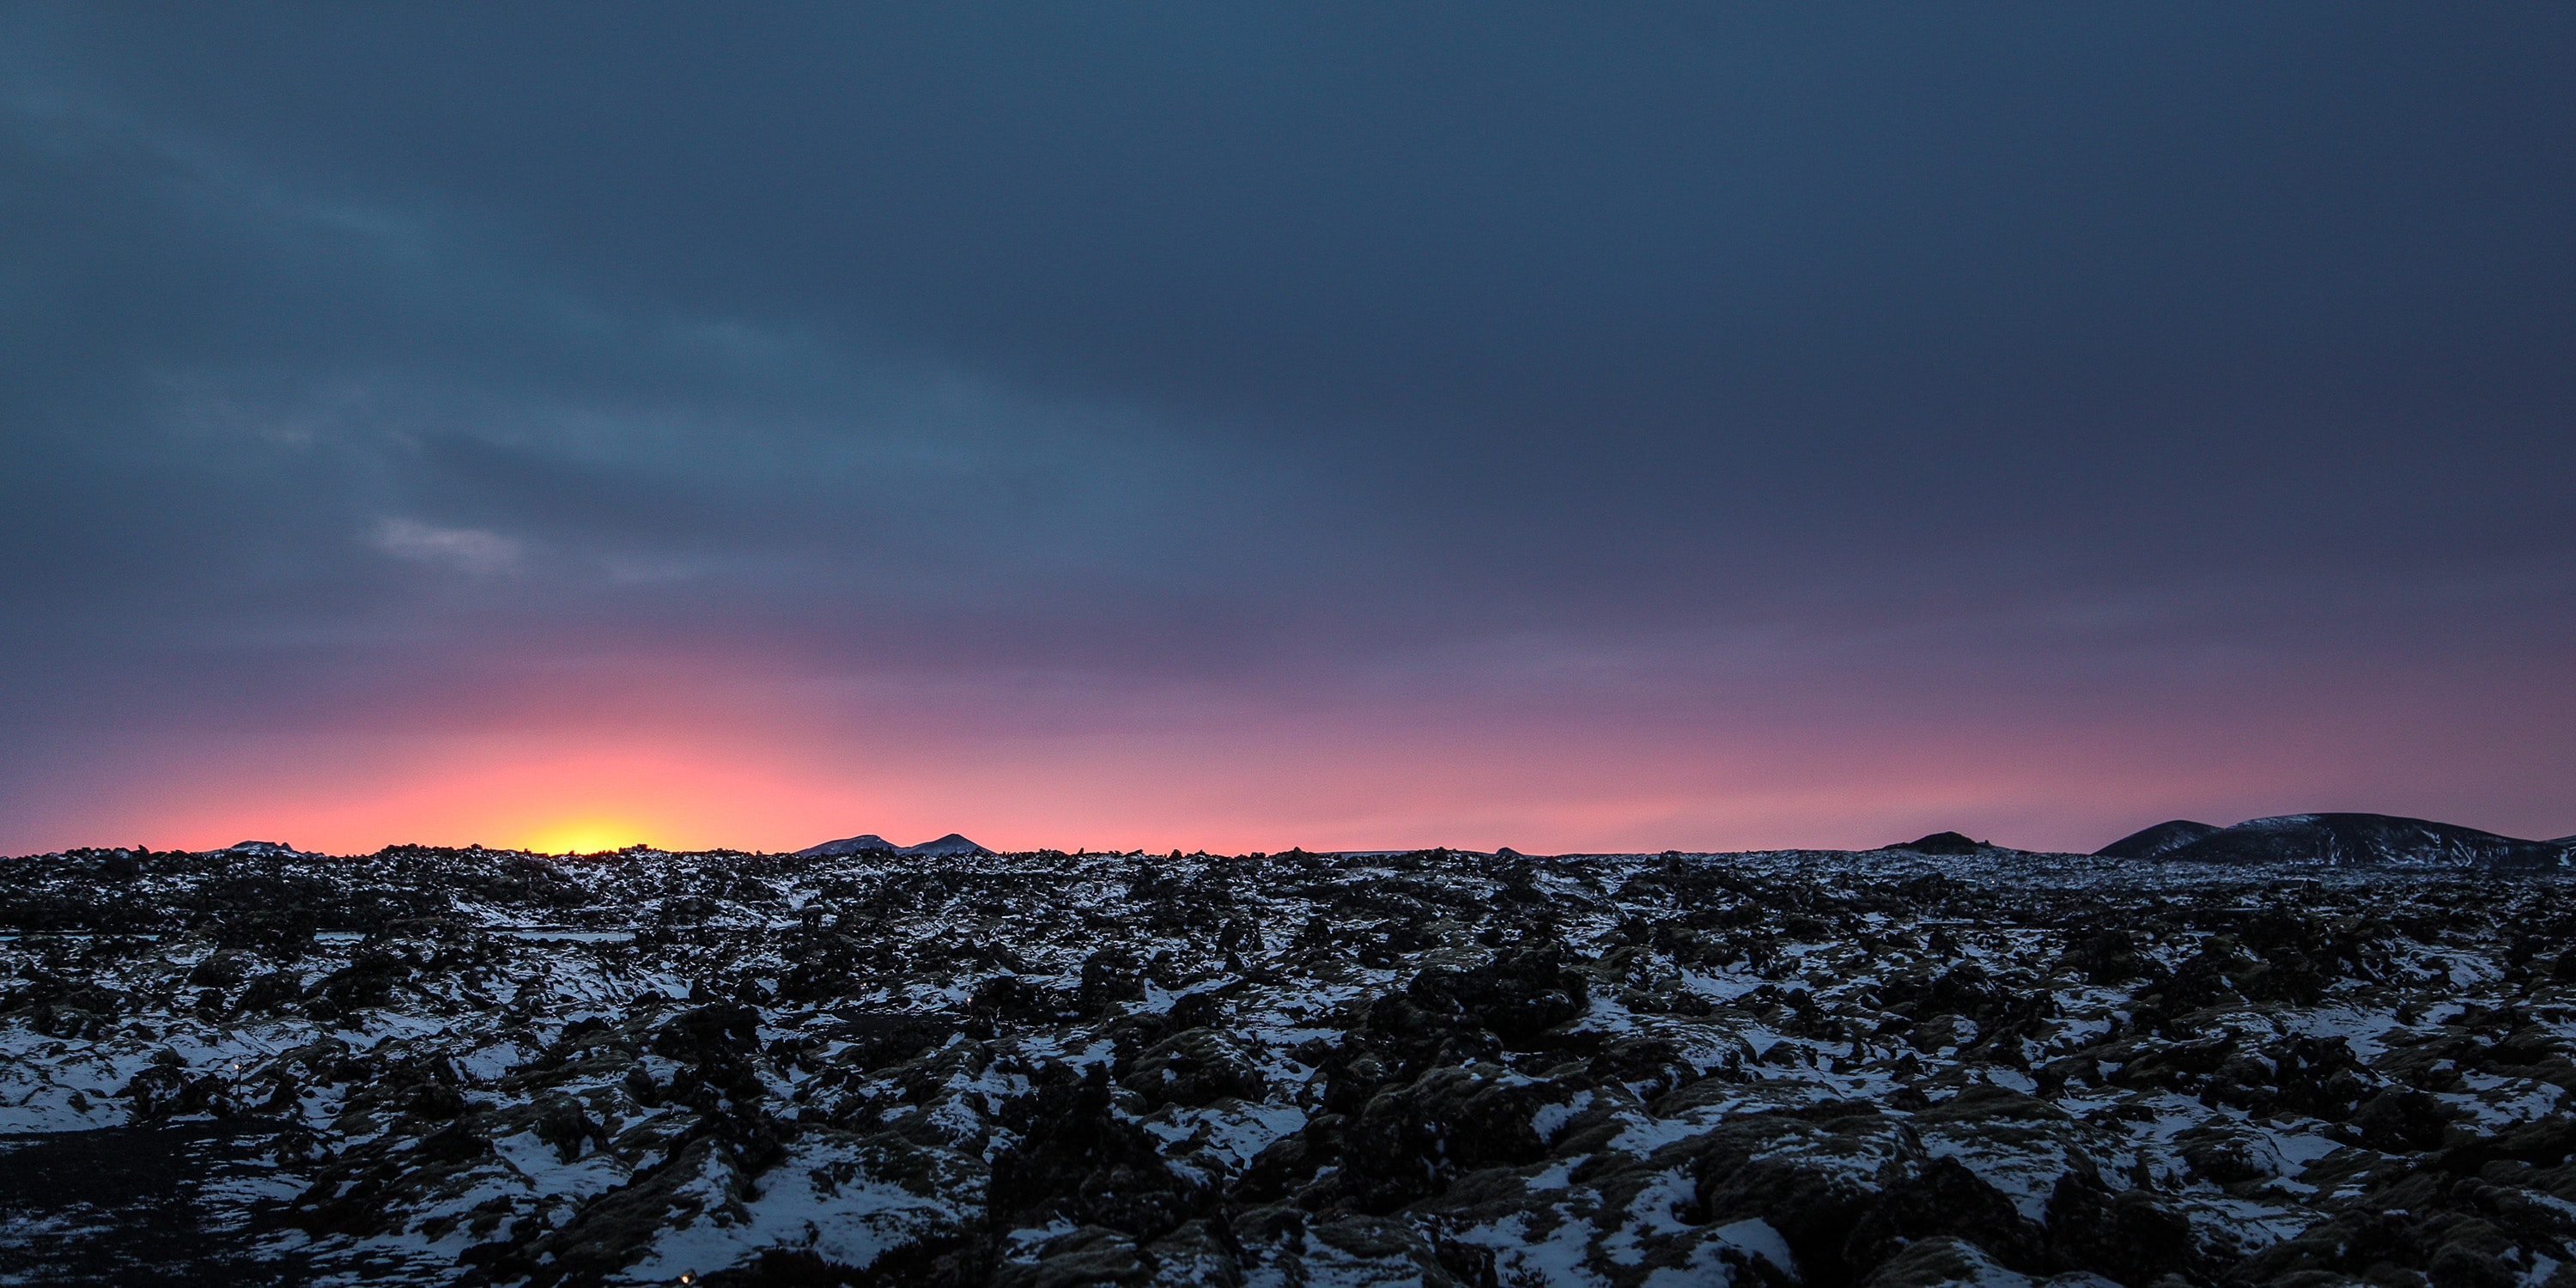 The sun just below horizon on a rocky landscape with light snow